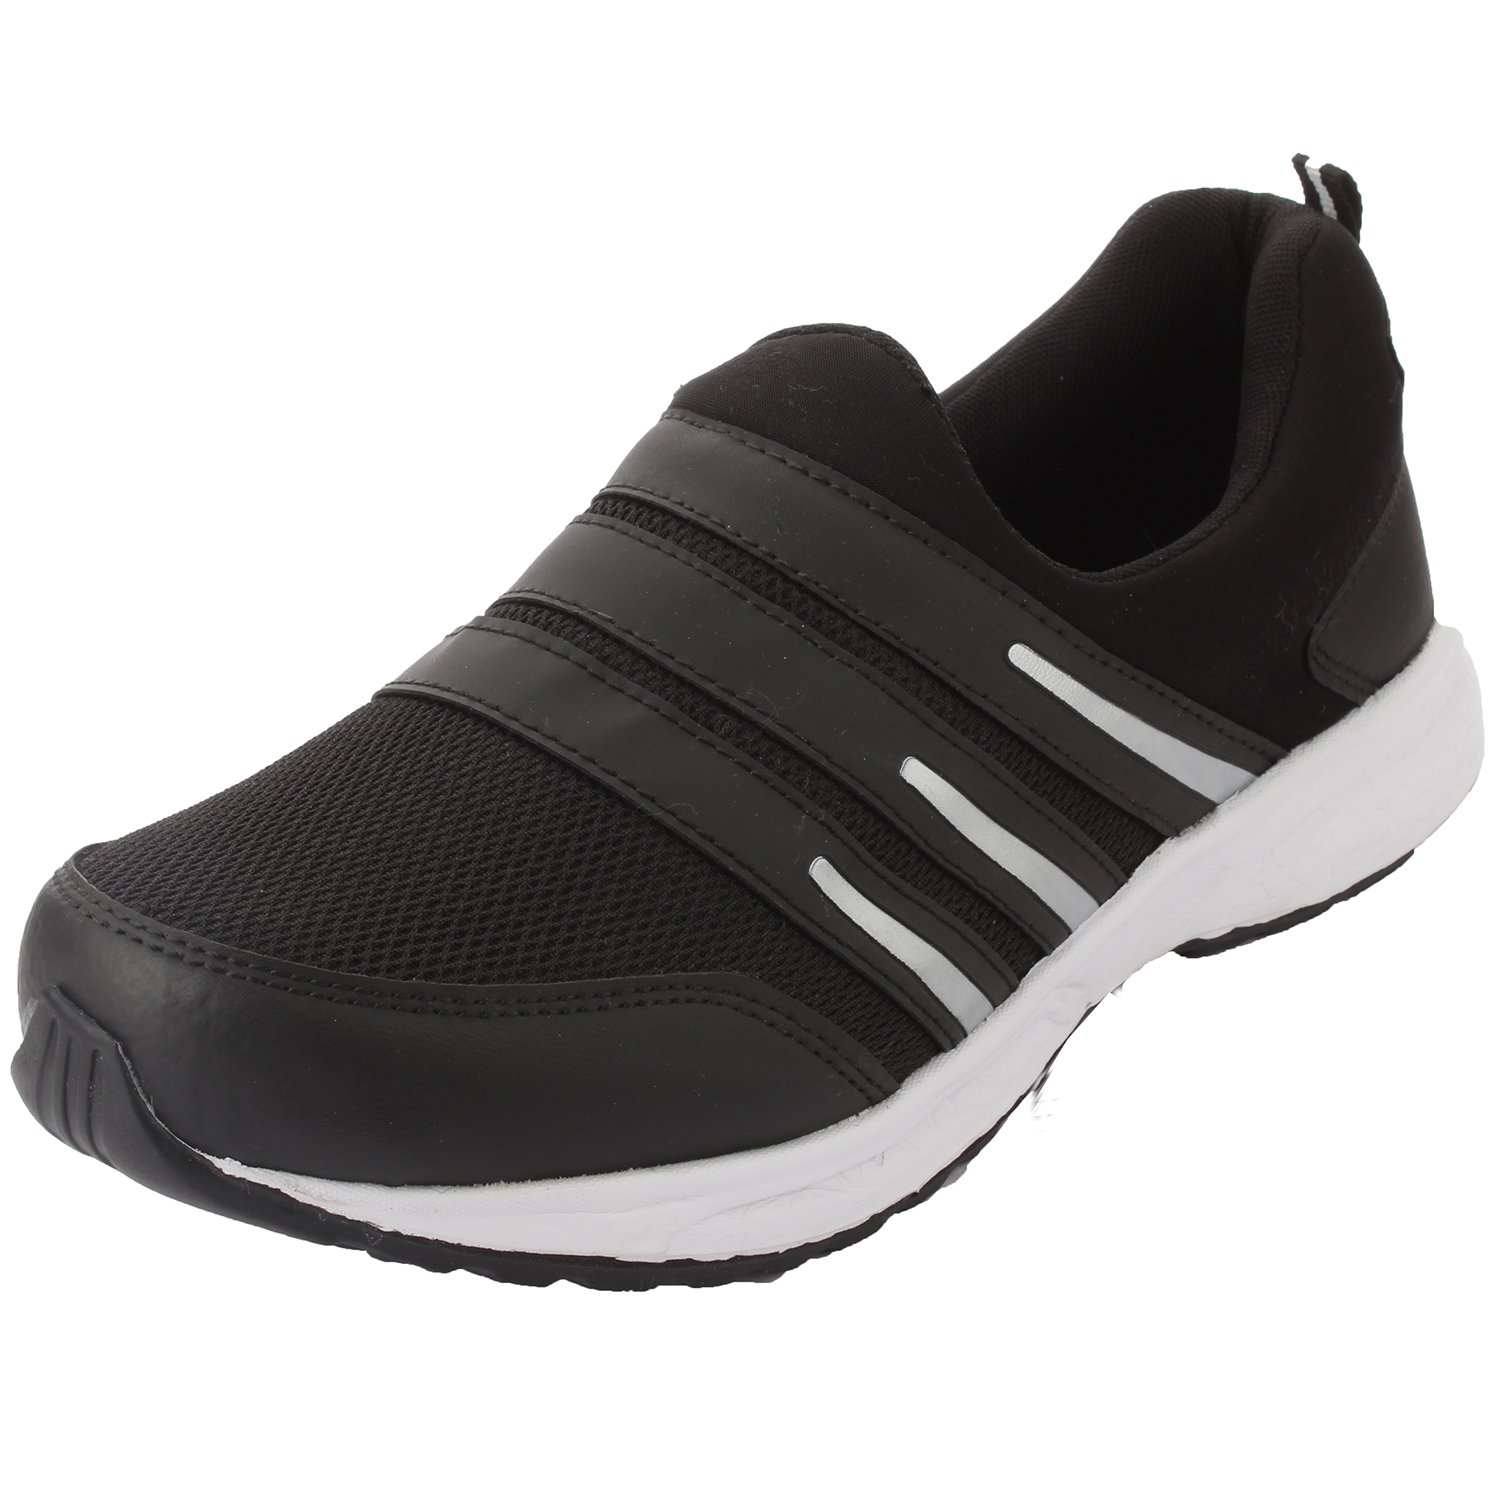 cd409127d902 Redon Men s Black Running Shoes - 6 UK (F-16 Black--6)  Buy Online at Low  Prices in India - Amazon.in